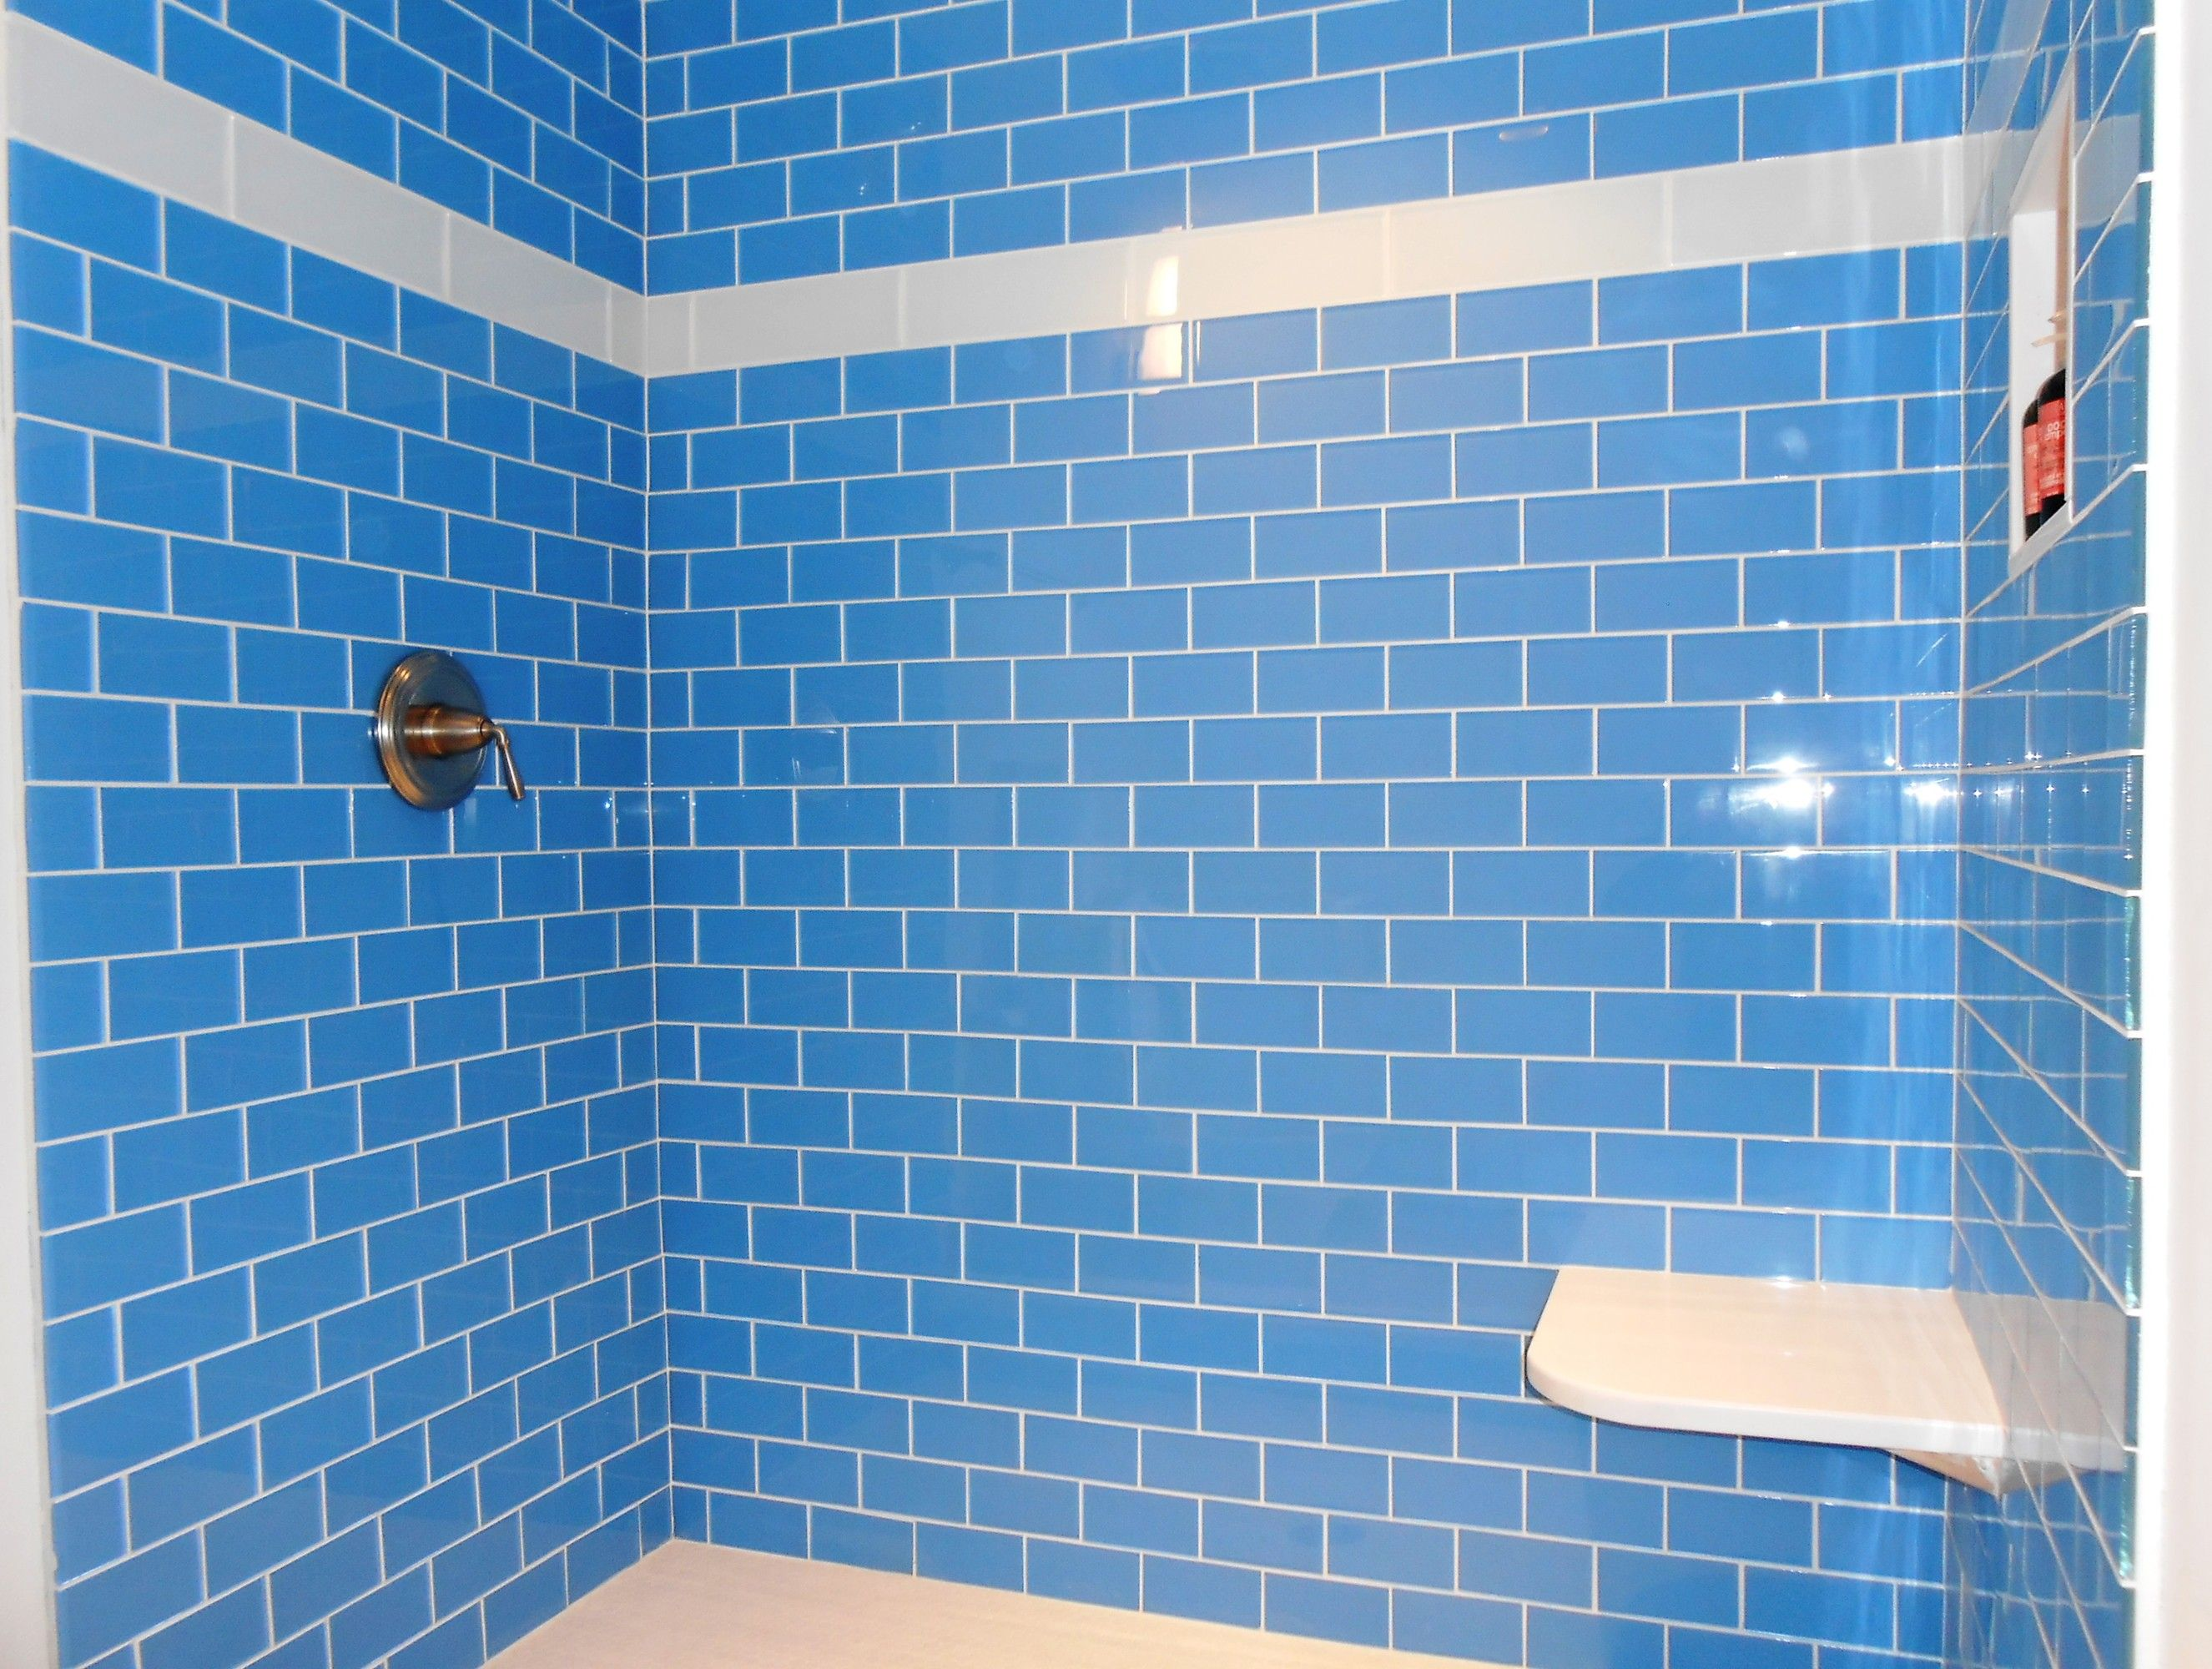 Lush Periwinkle 3x6 Bright Blue Glass Subway Tile Shower Wall ...